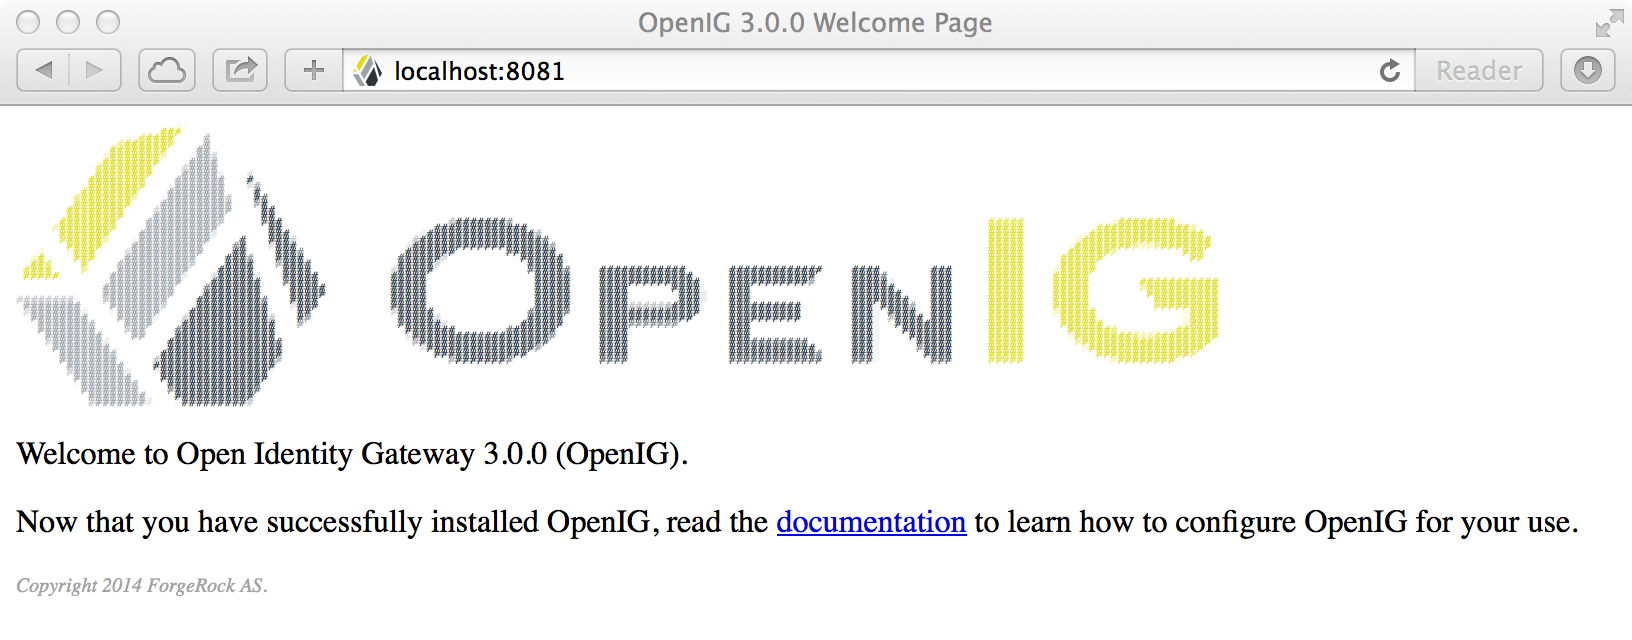 OpenIG 3.0.0 - Welcome Page